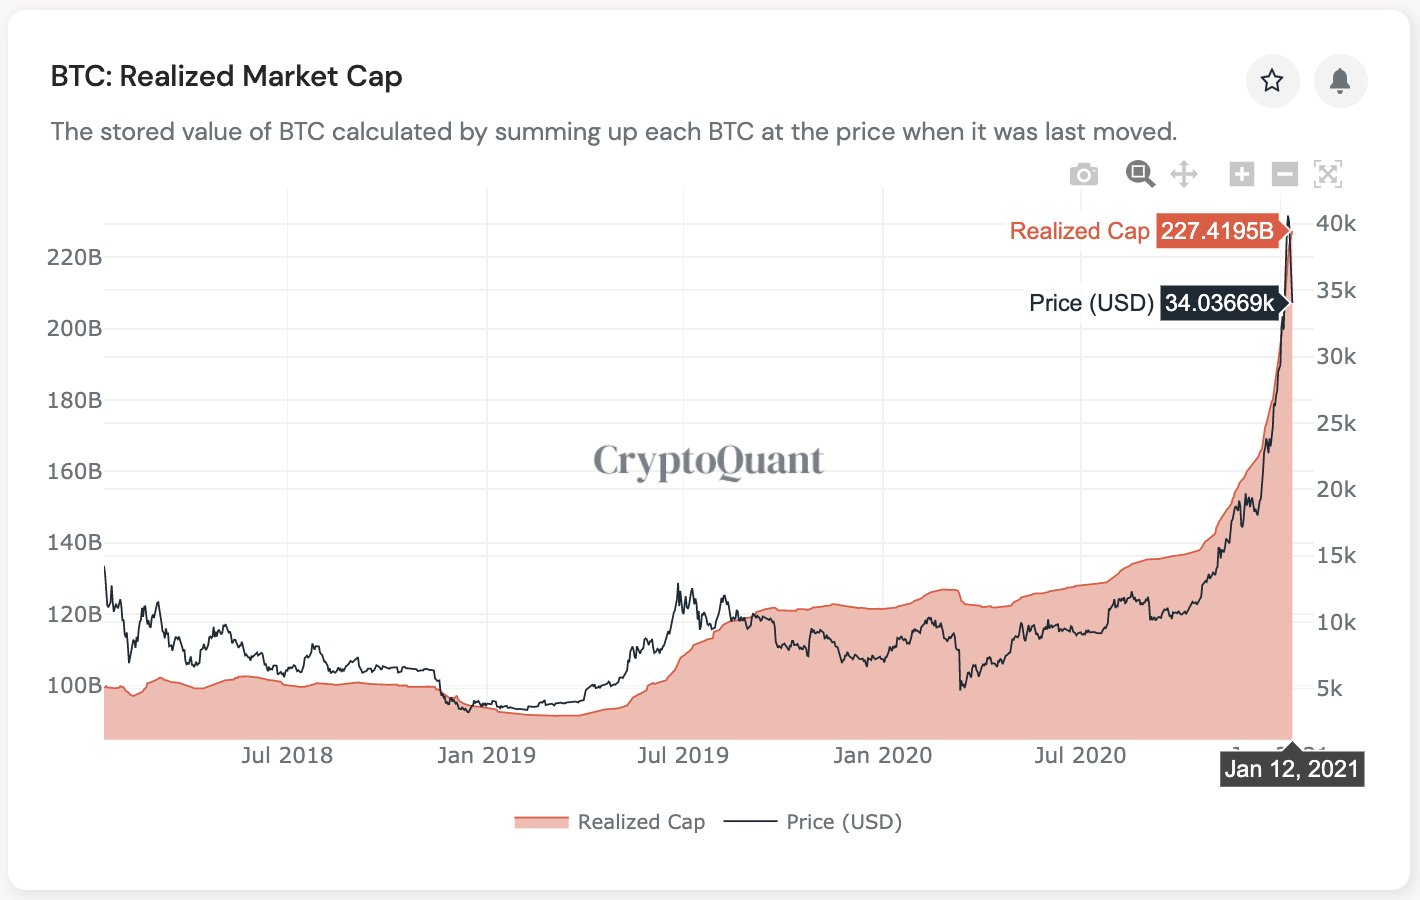 Bitcoin has truly solely taken 2% of gold market cap, new knowledge suggests